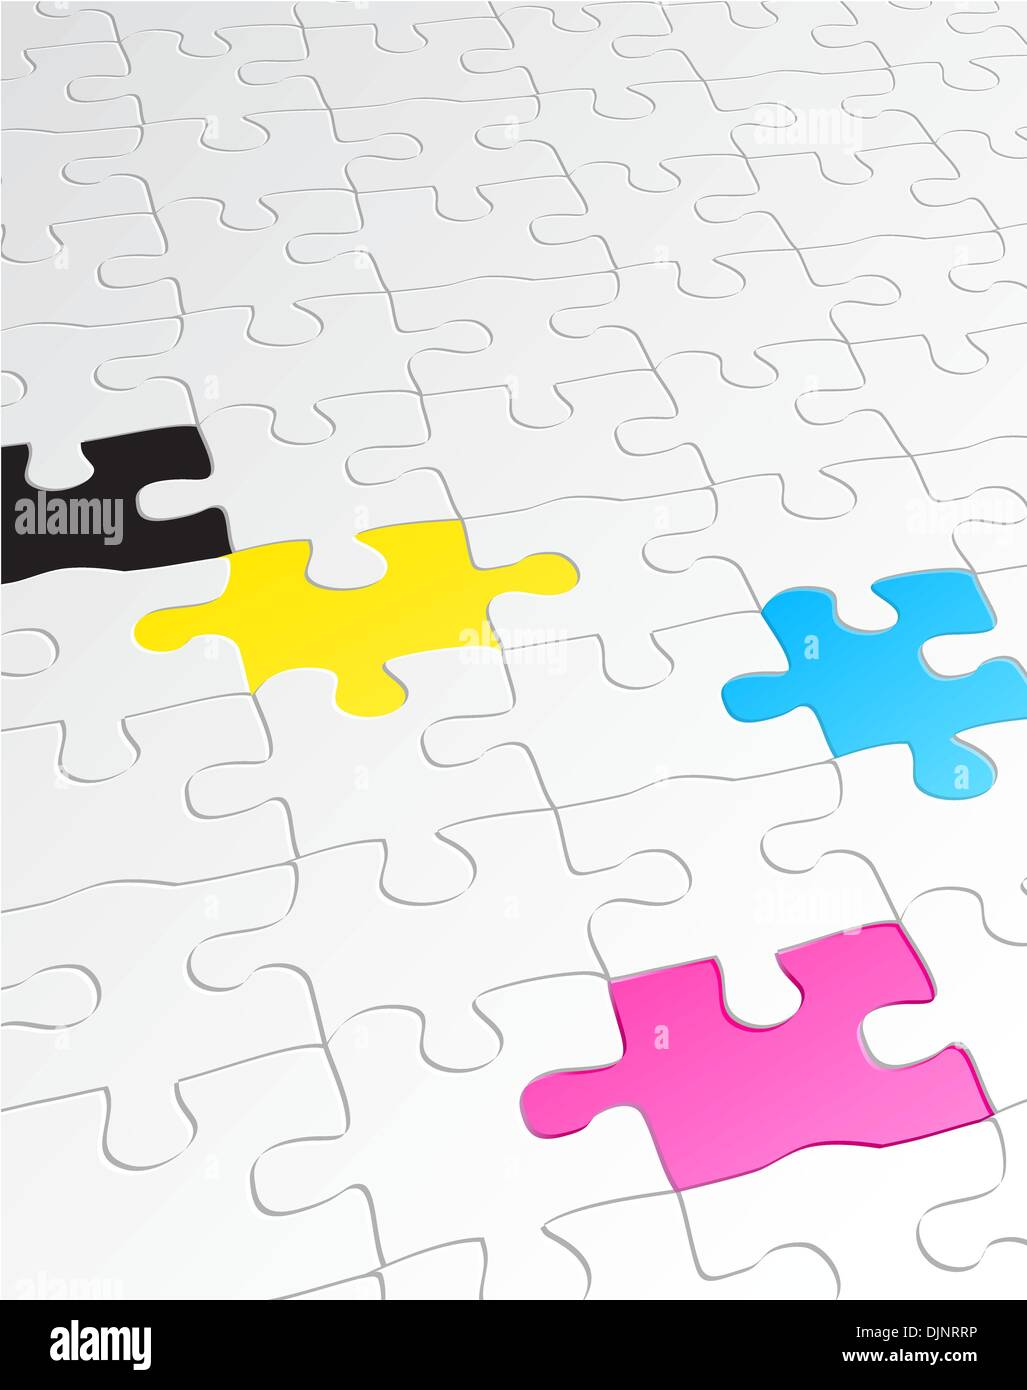 Vector Illustration Of Abstract Background Made Jigsaw Puzzle Templates With 4 Pieces In Different Colors